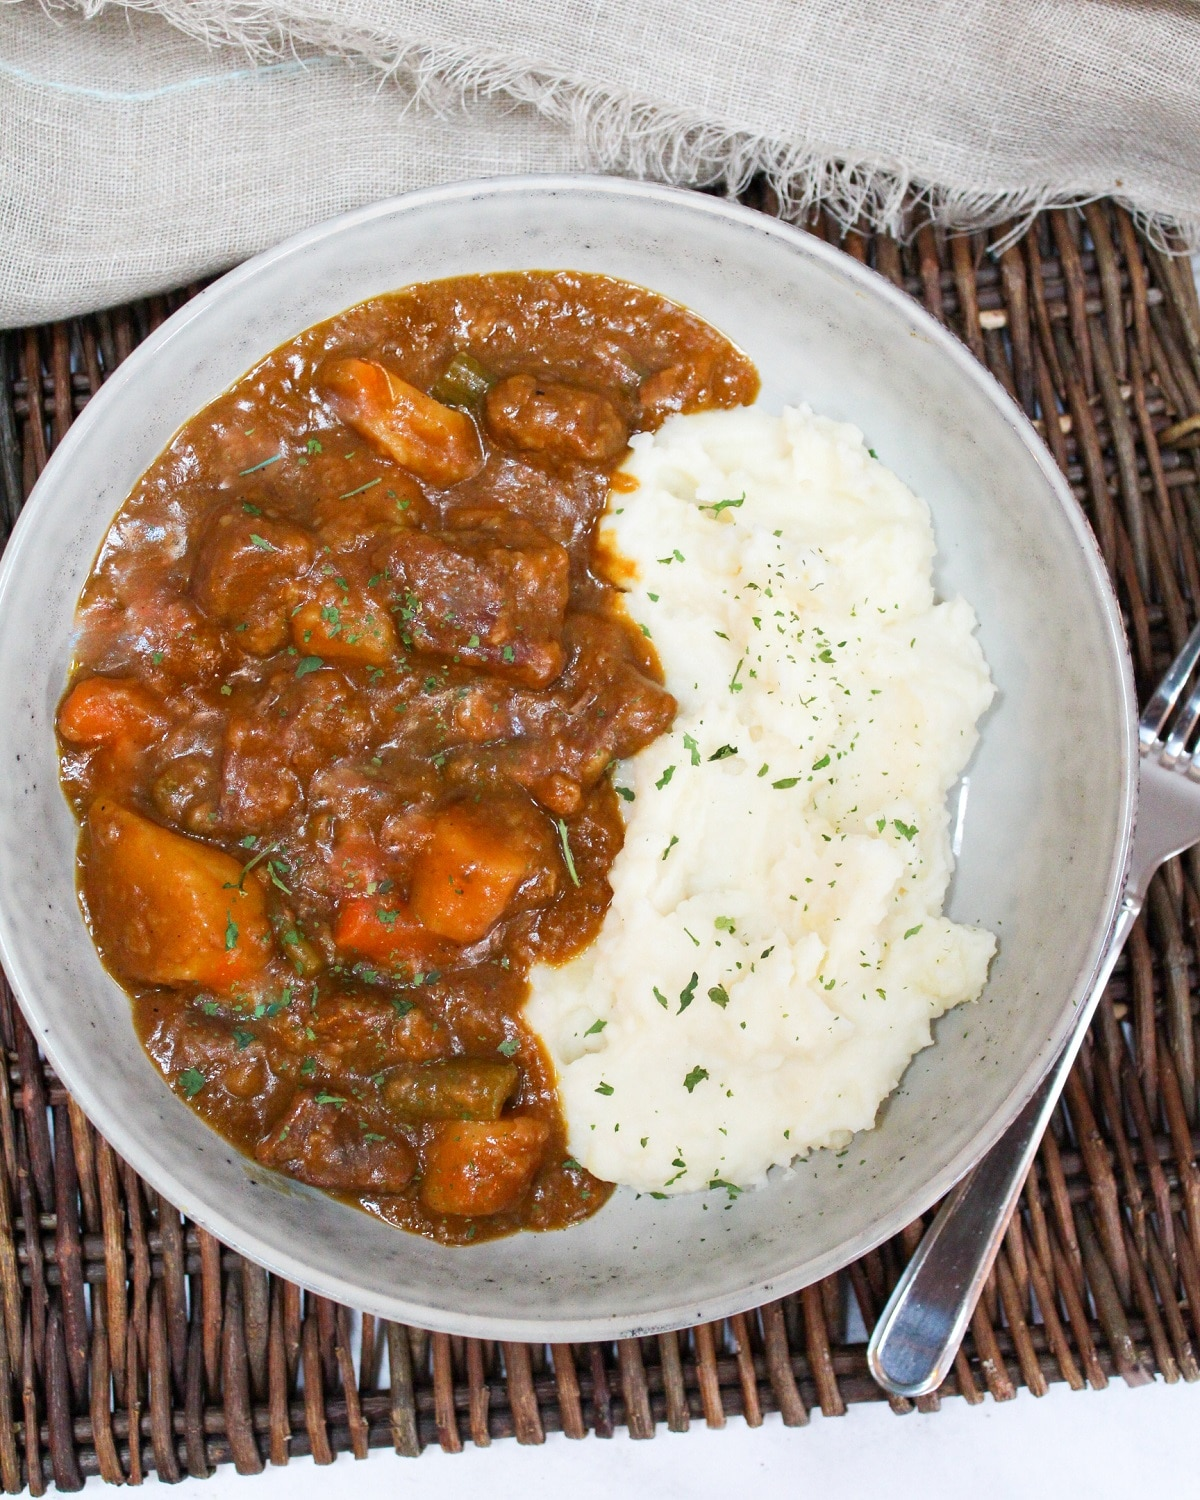 pumpkin beef stew in a gray bowl with mashed potatoes